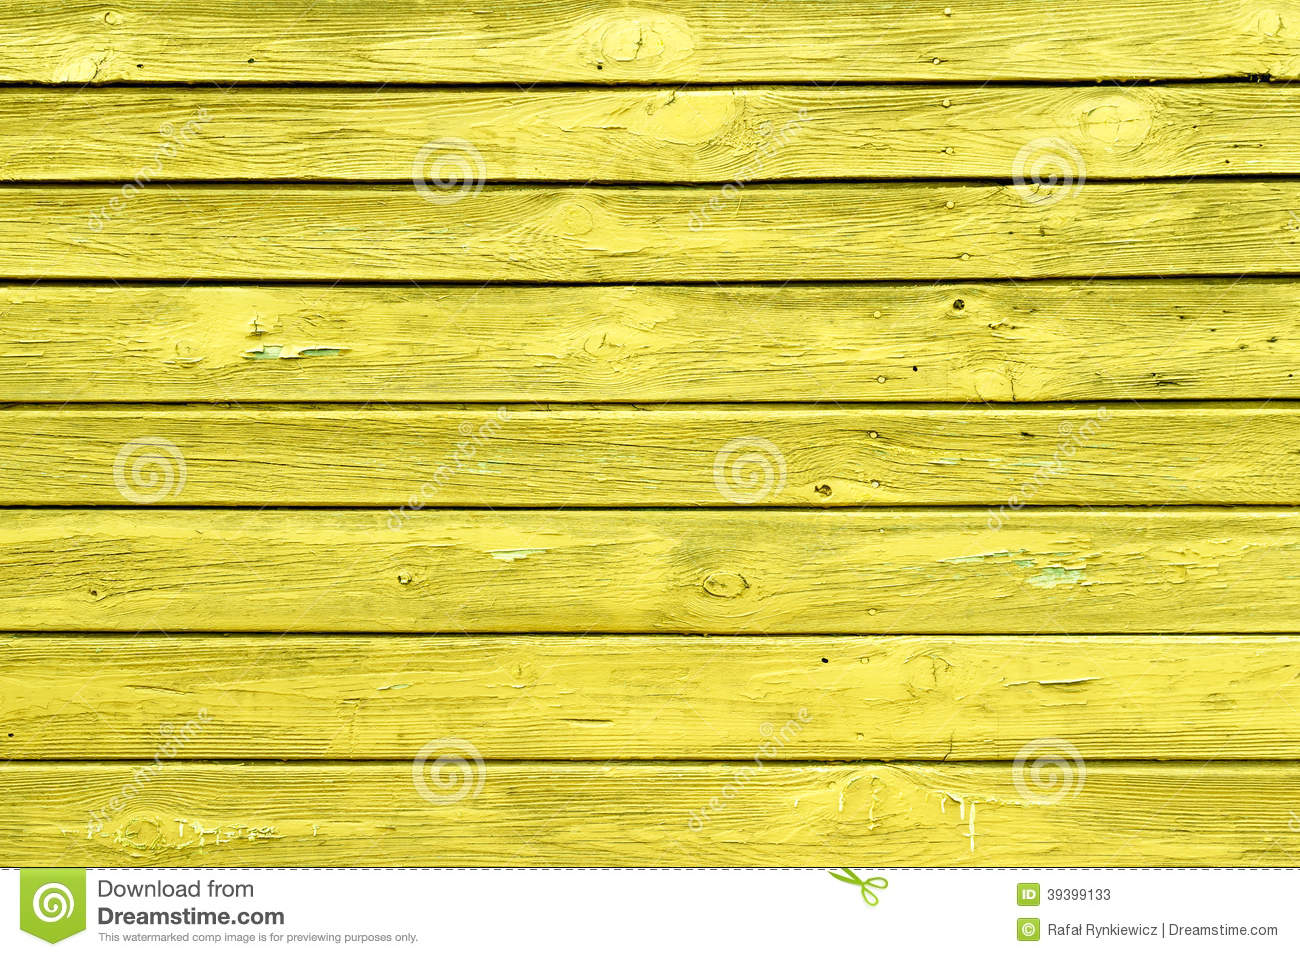 The Yellow Wood Texture With Natural Patterns Stock Image